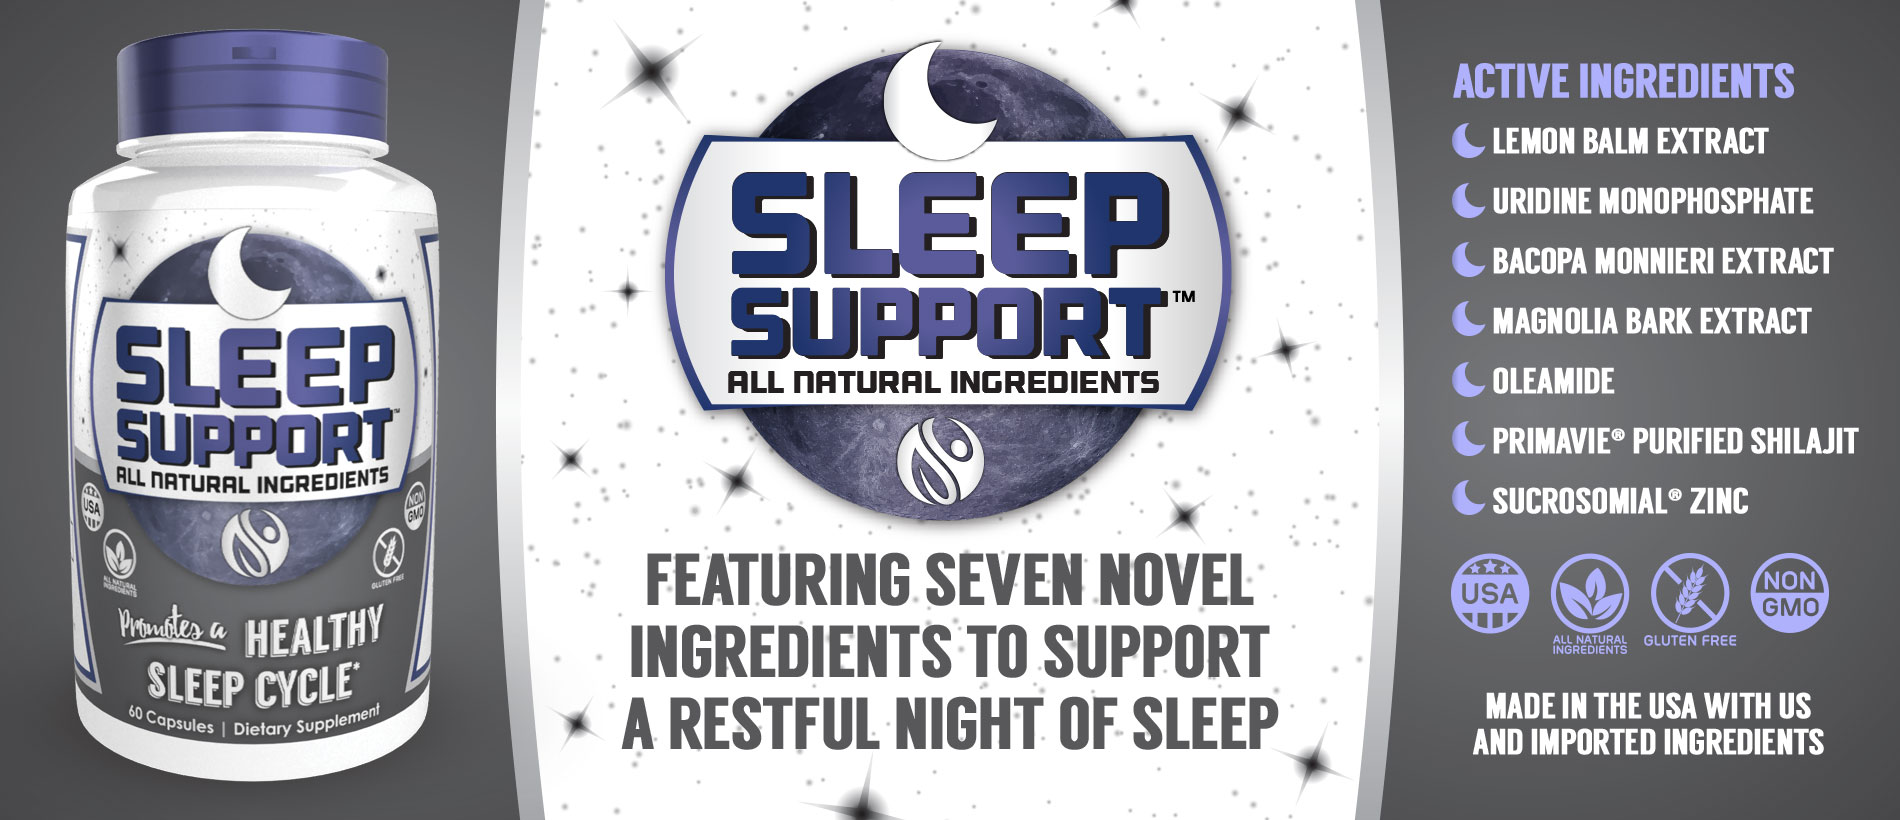 Sleep Support Capsules by Natrium Health